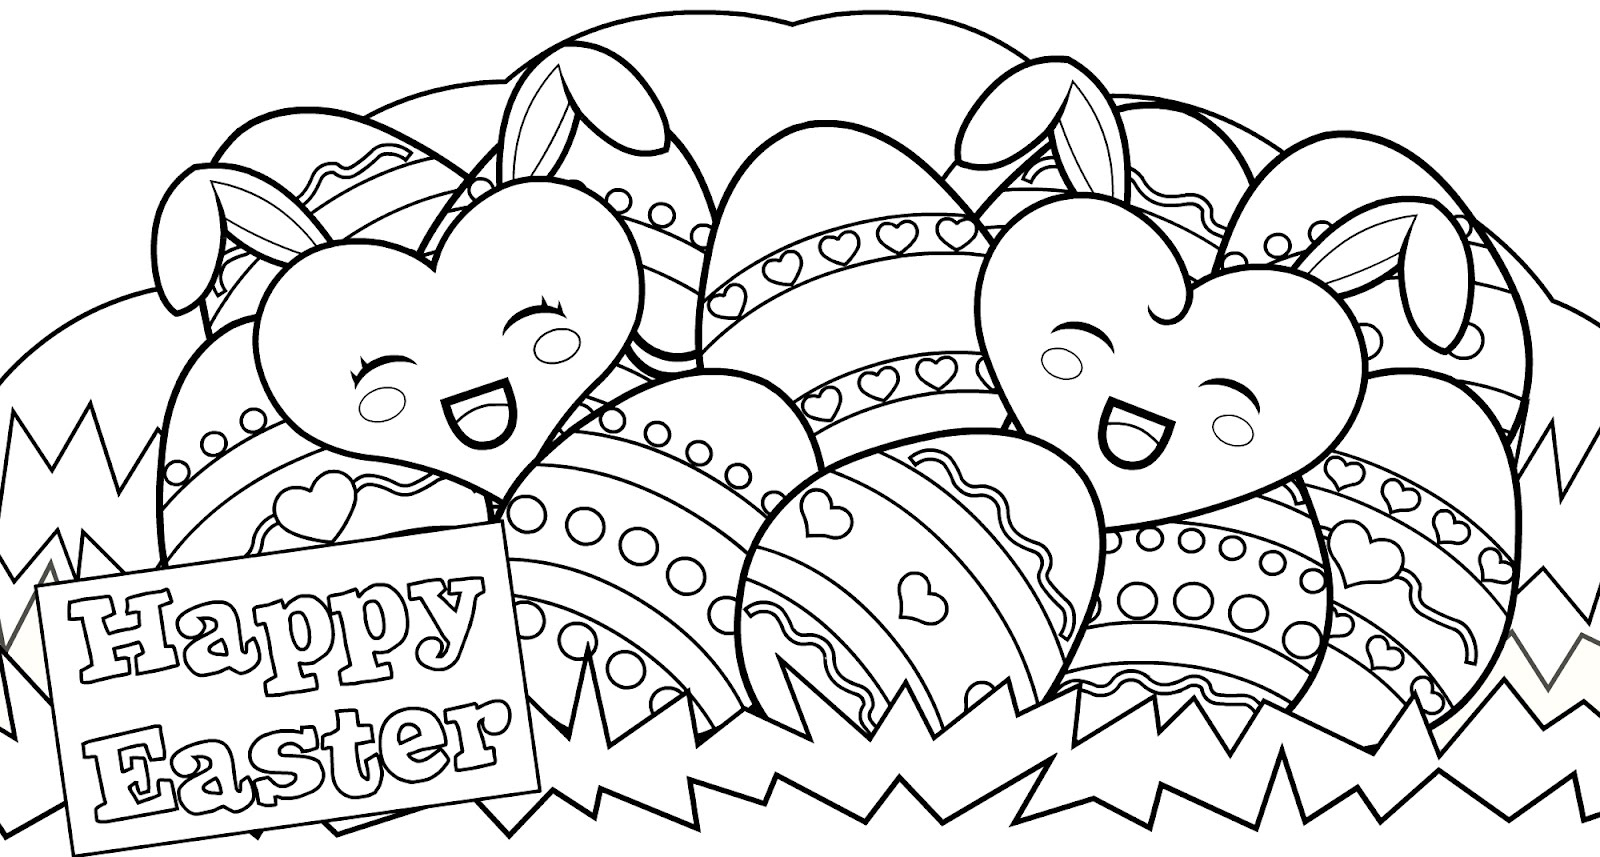 Easter Coloring Pages Best Coloring Pages for Kids to Print Of Easter Egg Designs Coloring Pages to Print